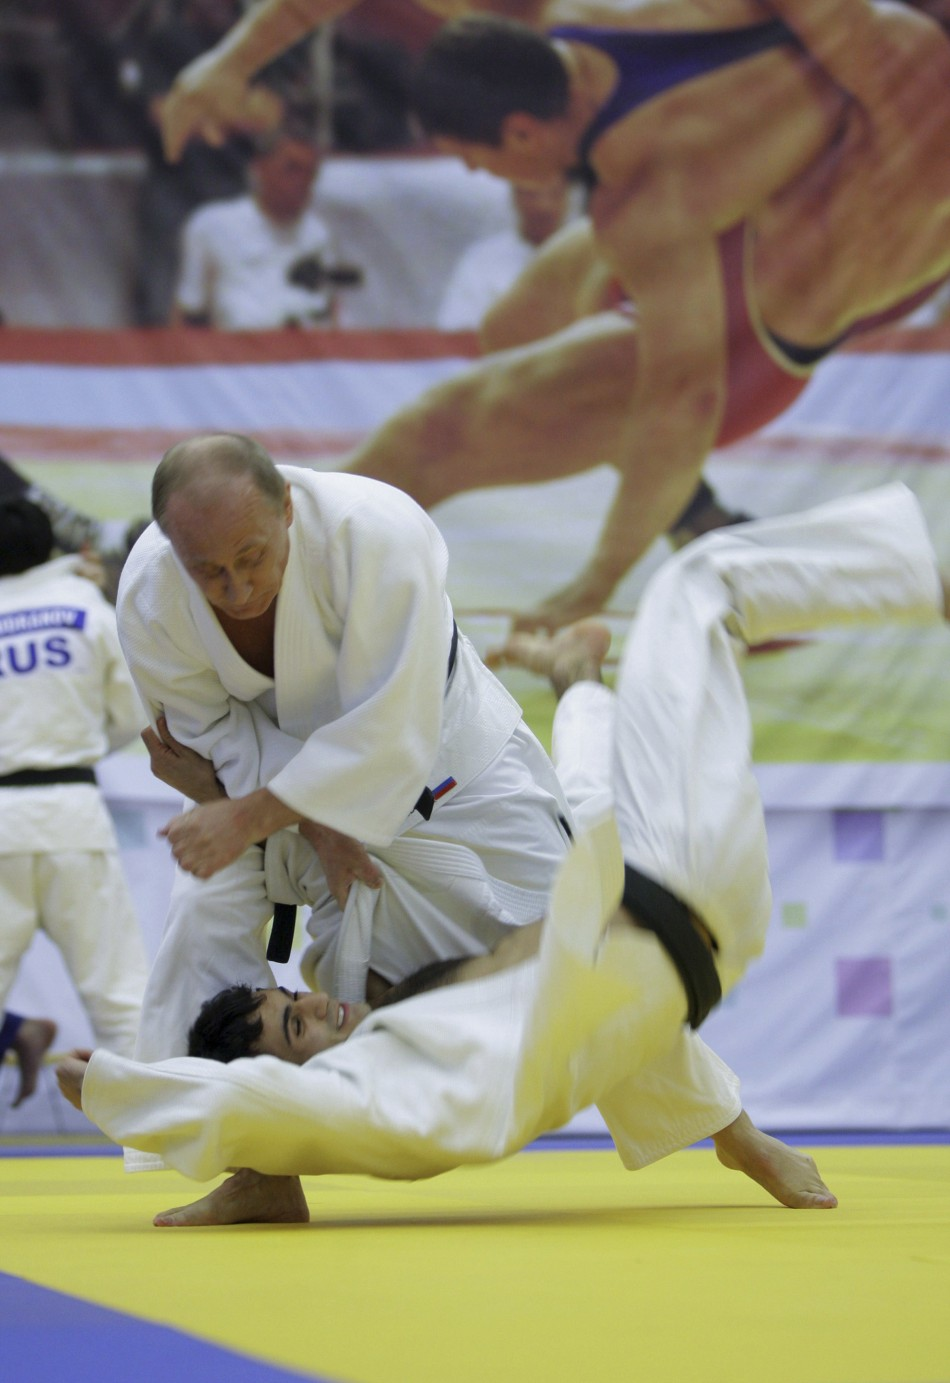 The judoka